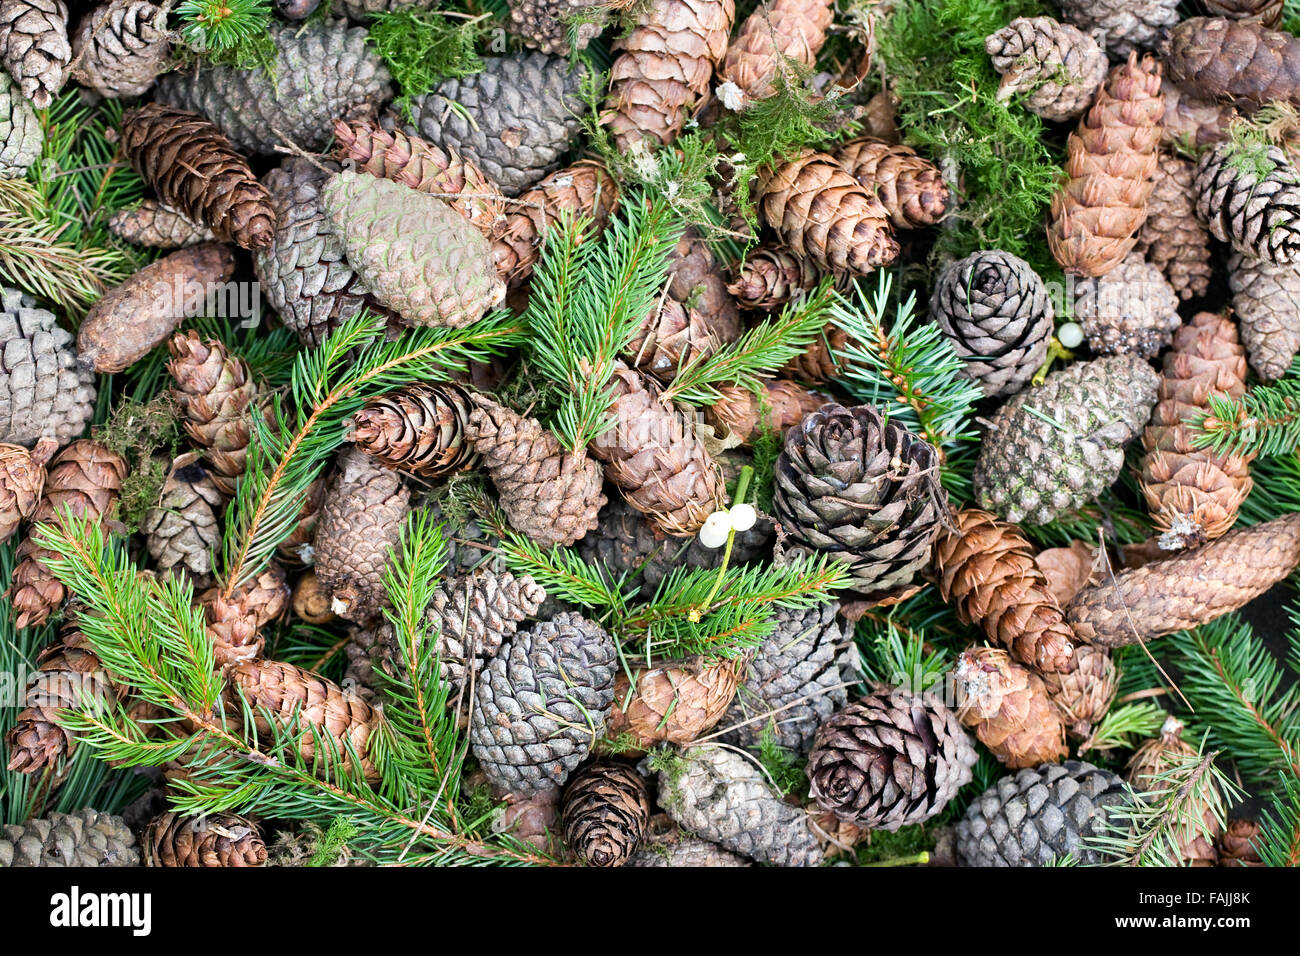 Assorted Pine cones and needles. - Stock Image